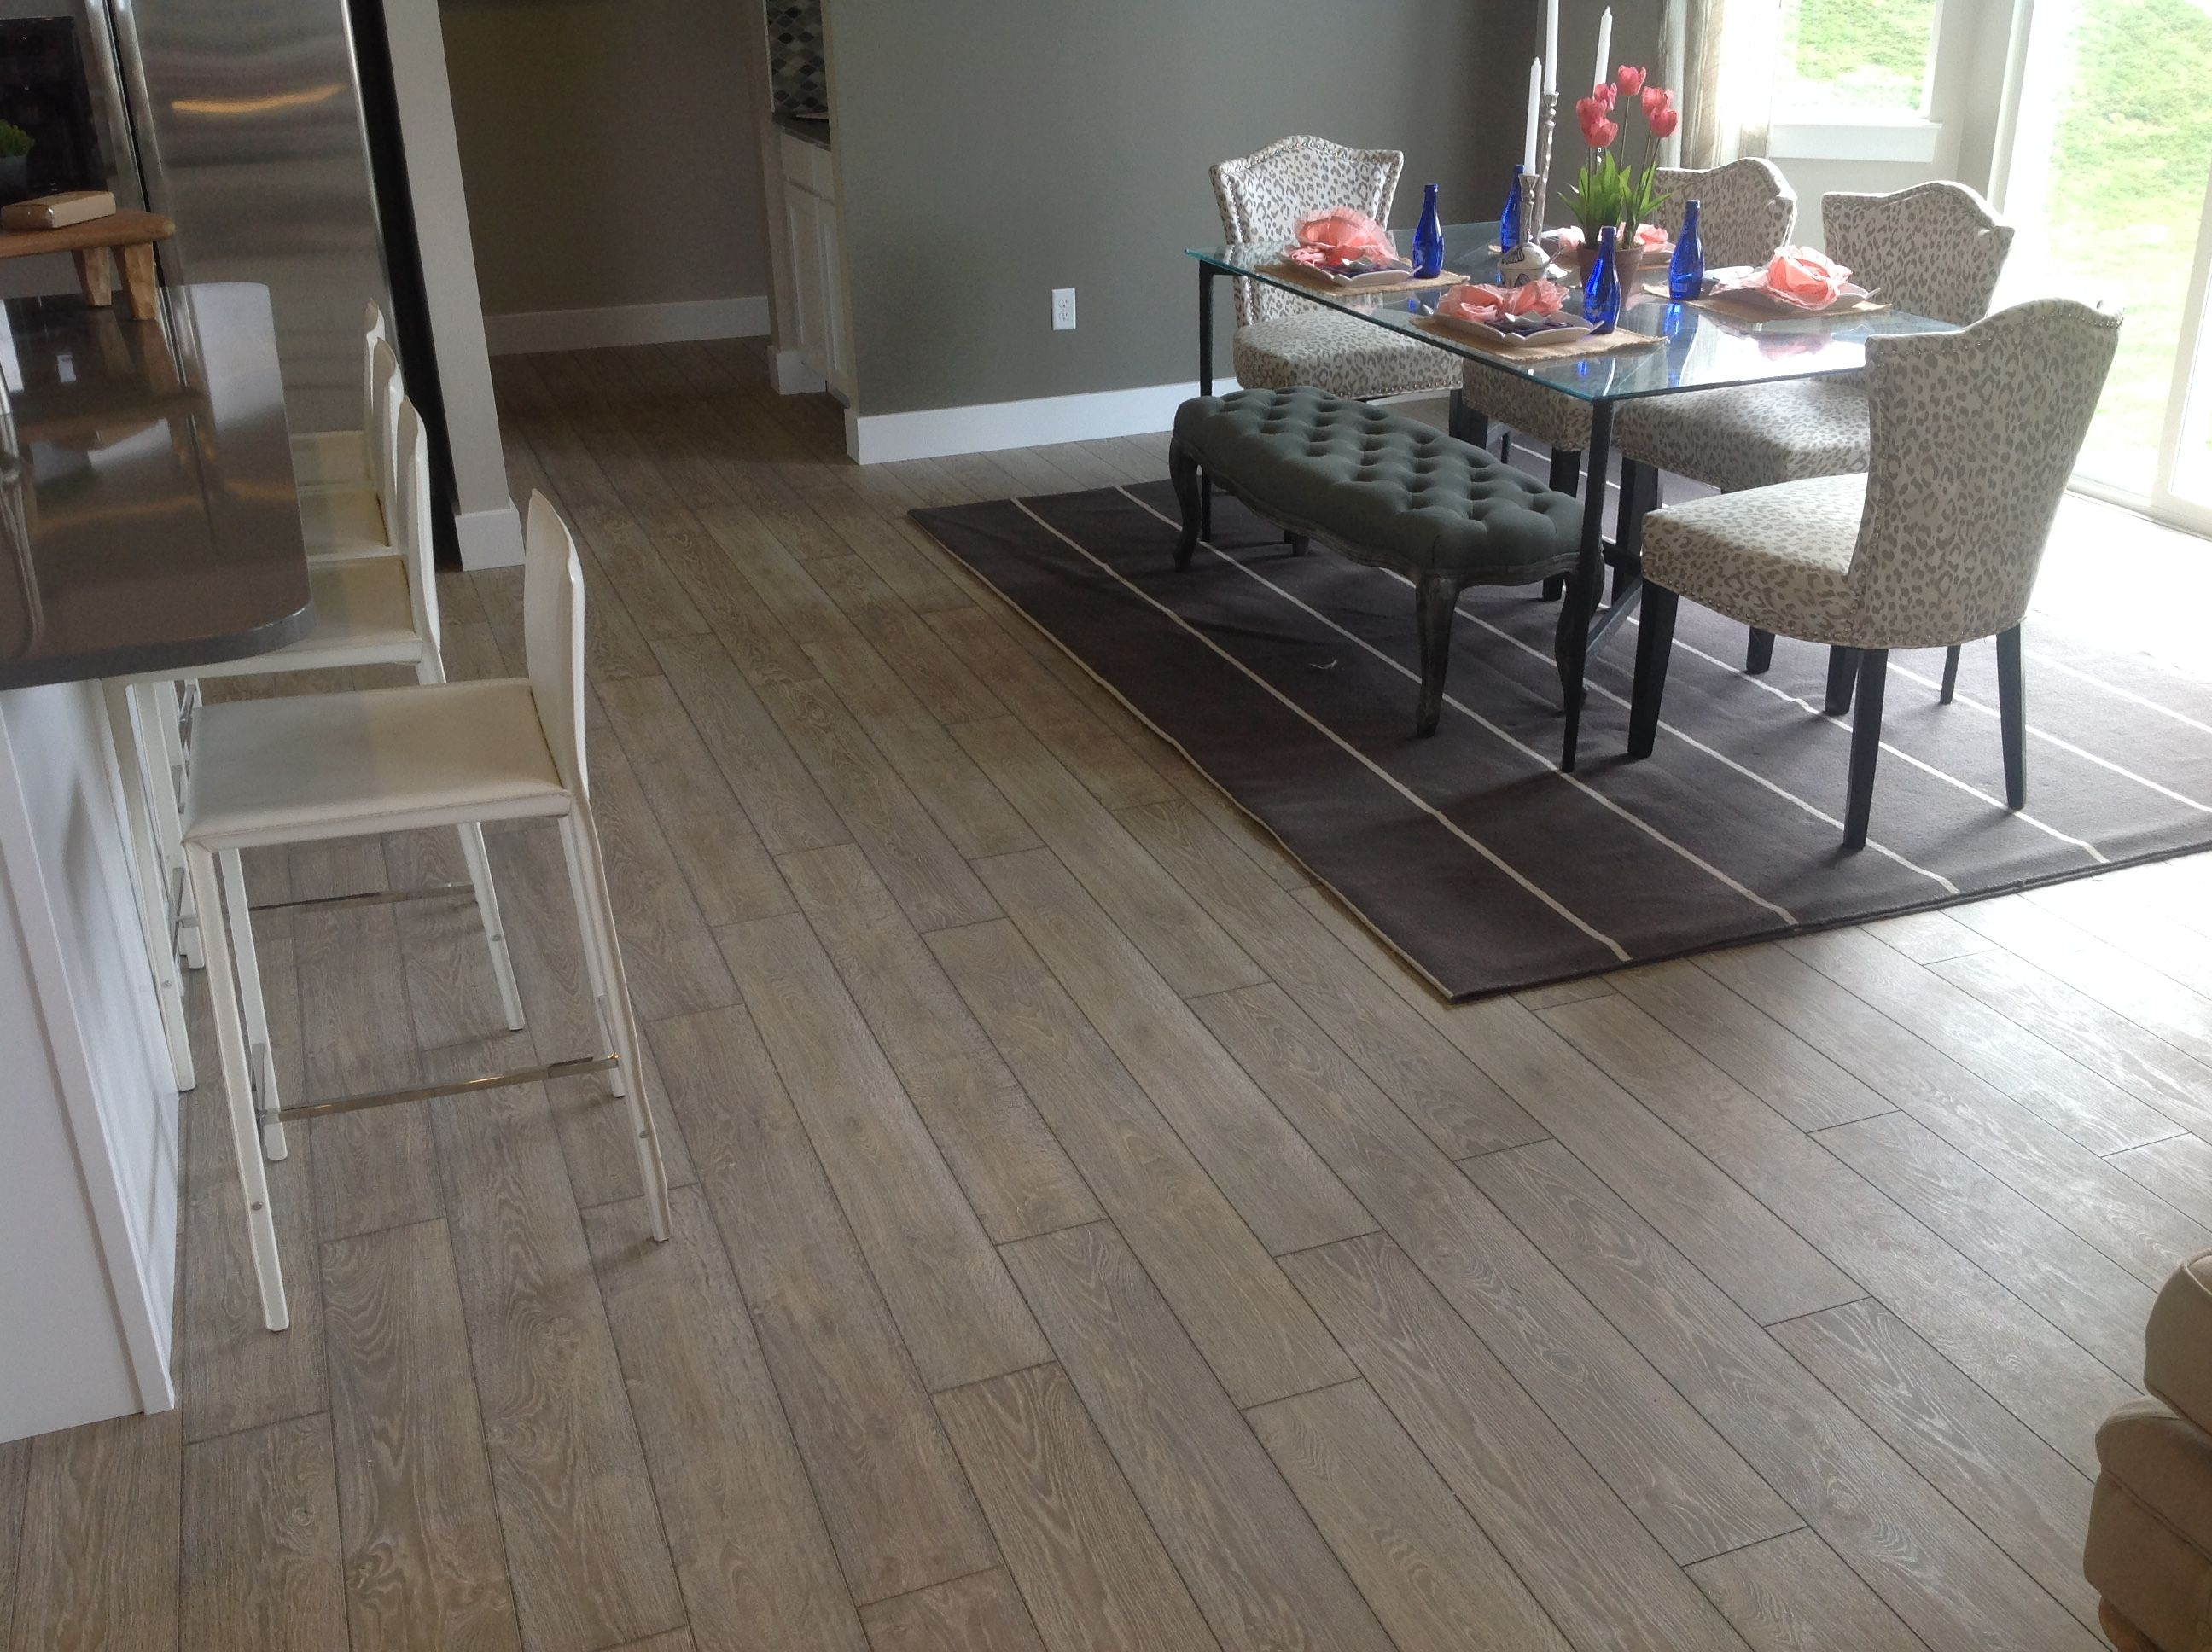 shop related flooring ideas every pictures floors room interior products hgtv options for best choices remodel option